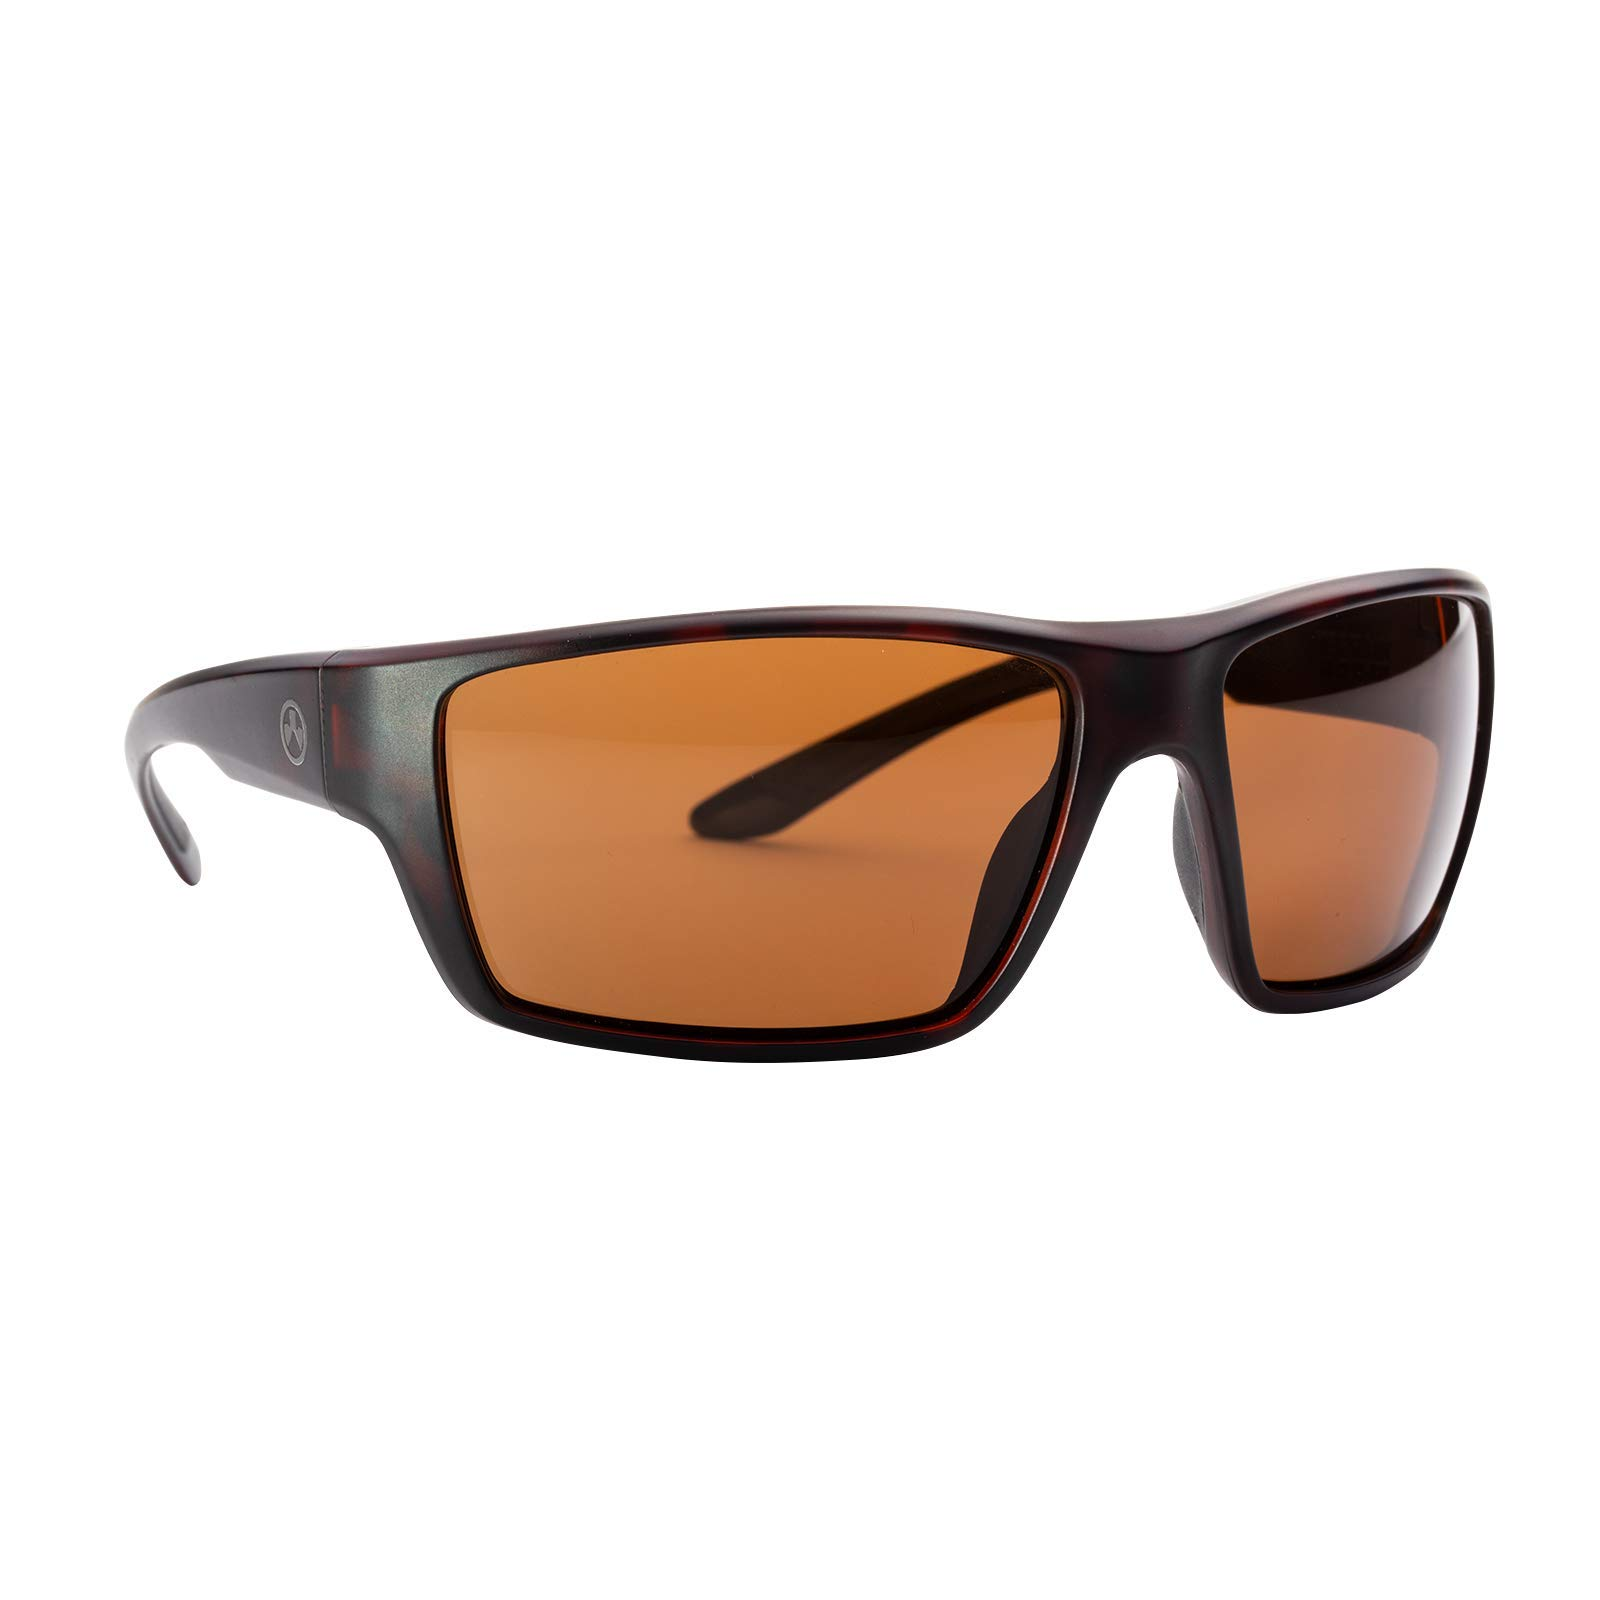 Magpul Terrain Sunglasses, Tortoise Frame/Bronze Lens, Polarized by Magpul